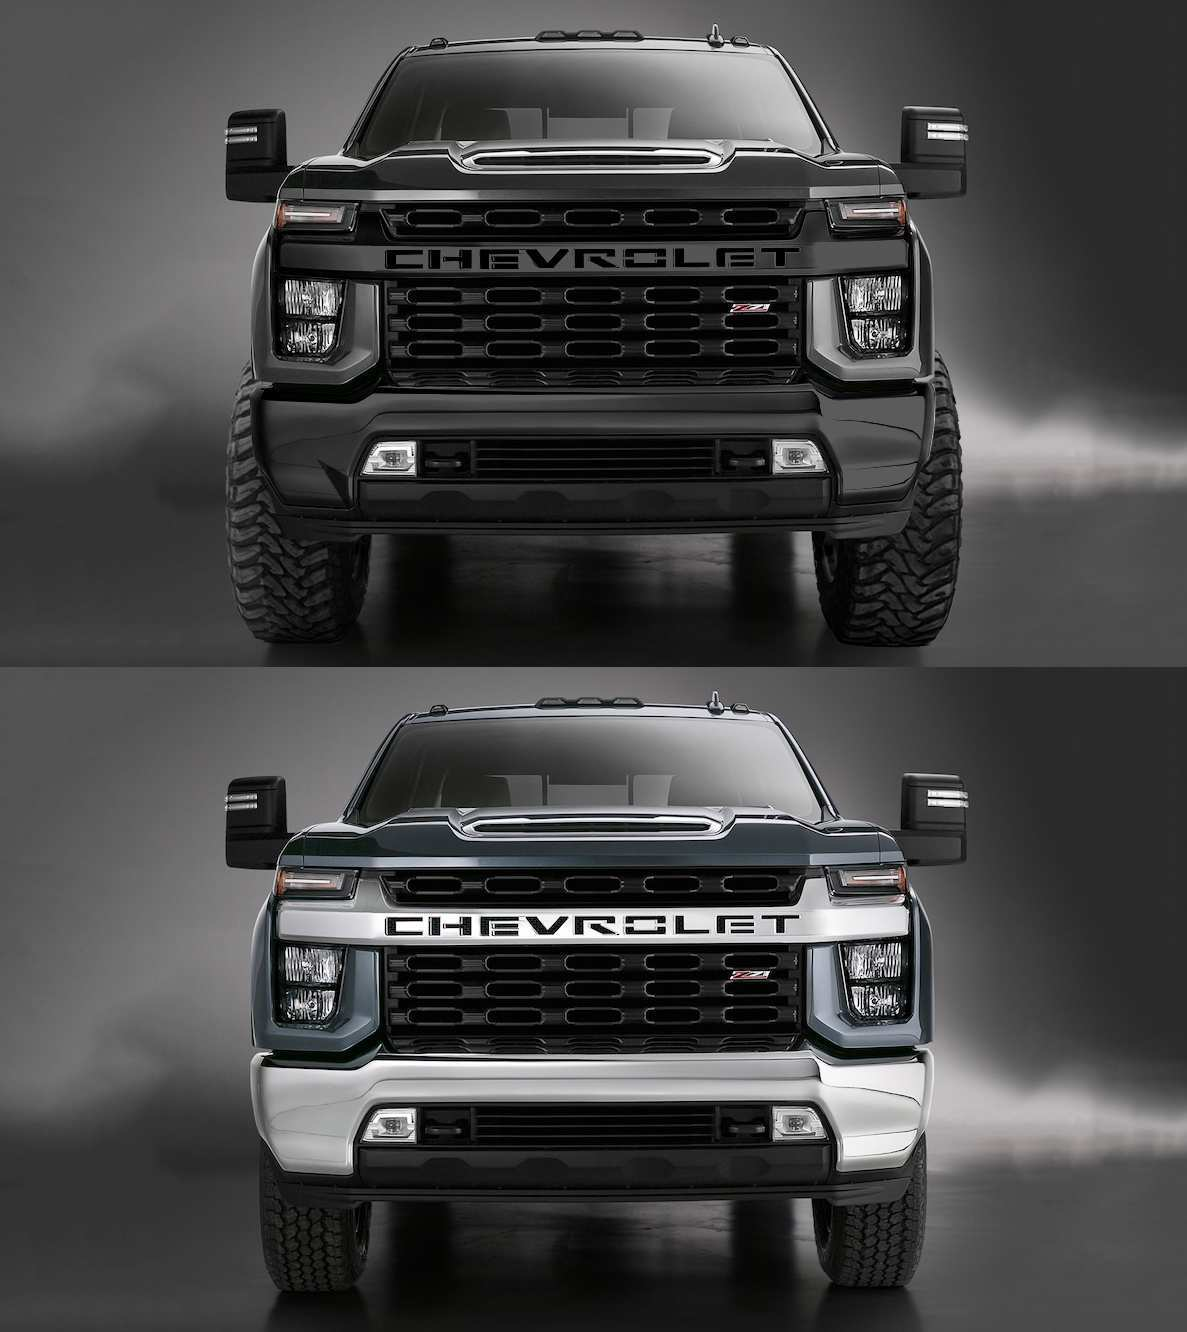 44 New Chevrolet Silverado 2020 Photoshop Release Date And Concept